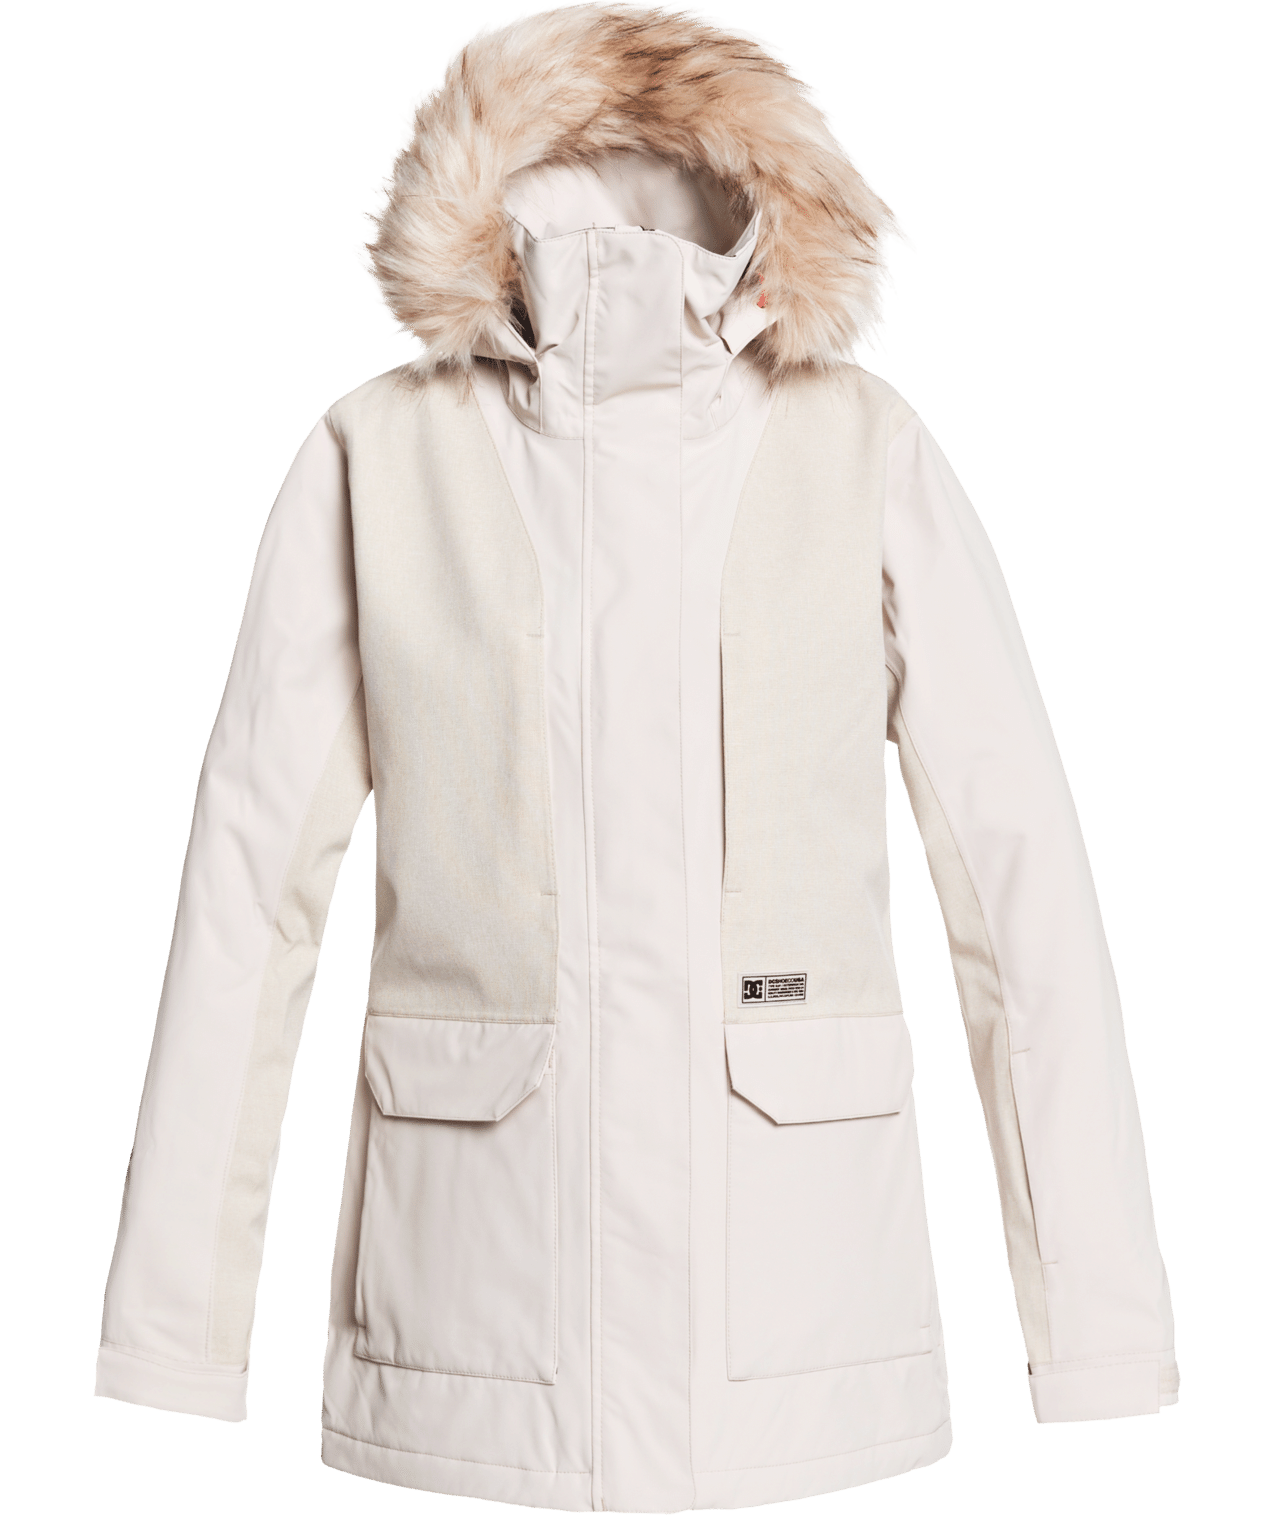 DC DC Women's Panoramic Jacket